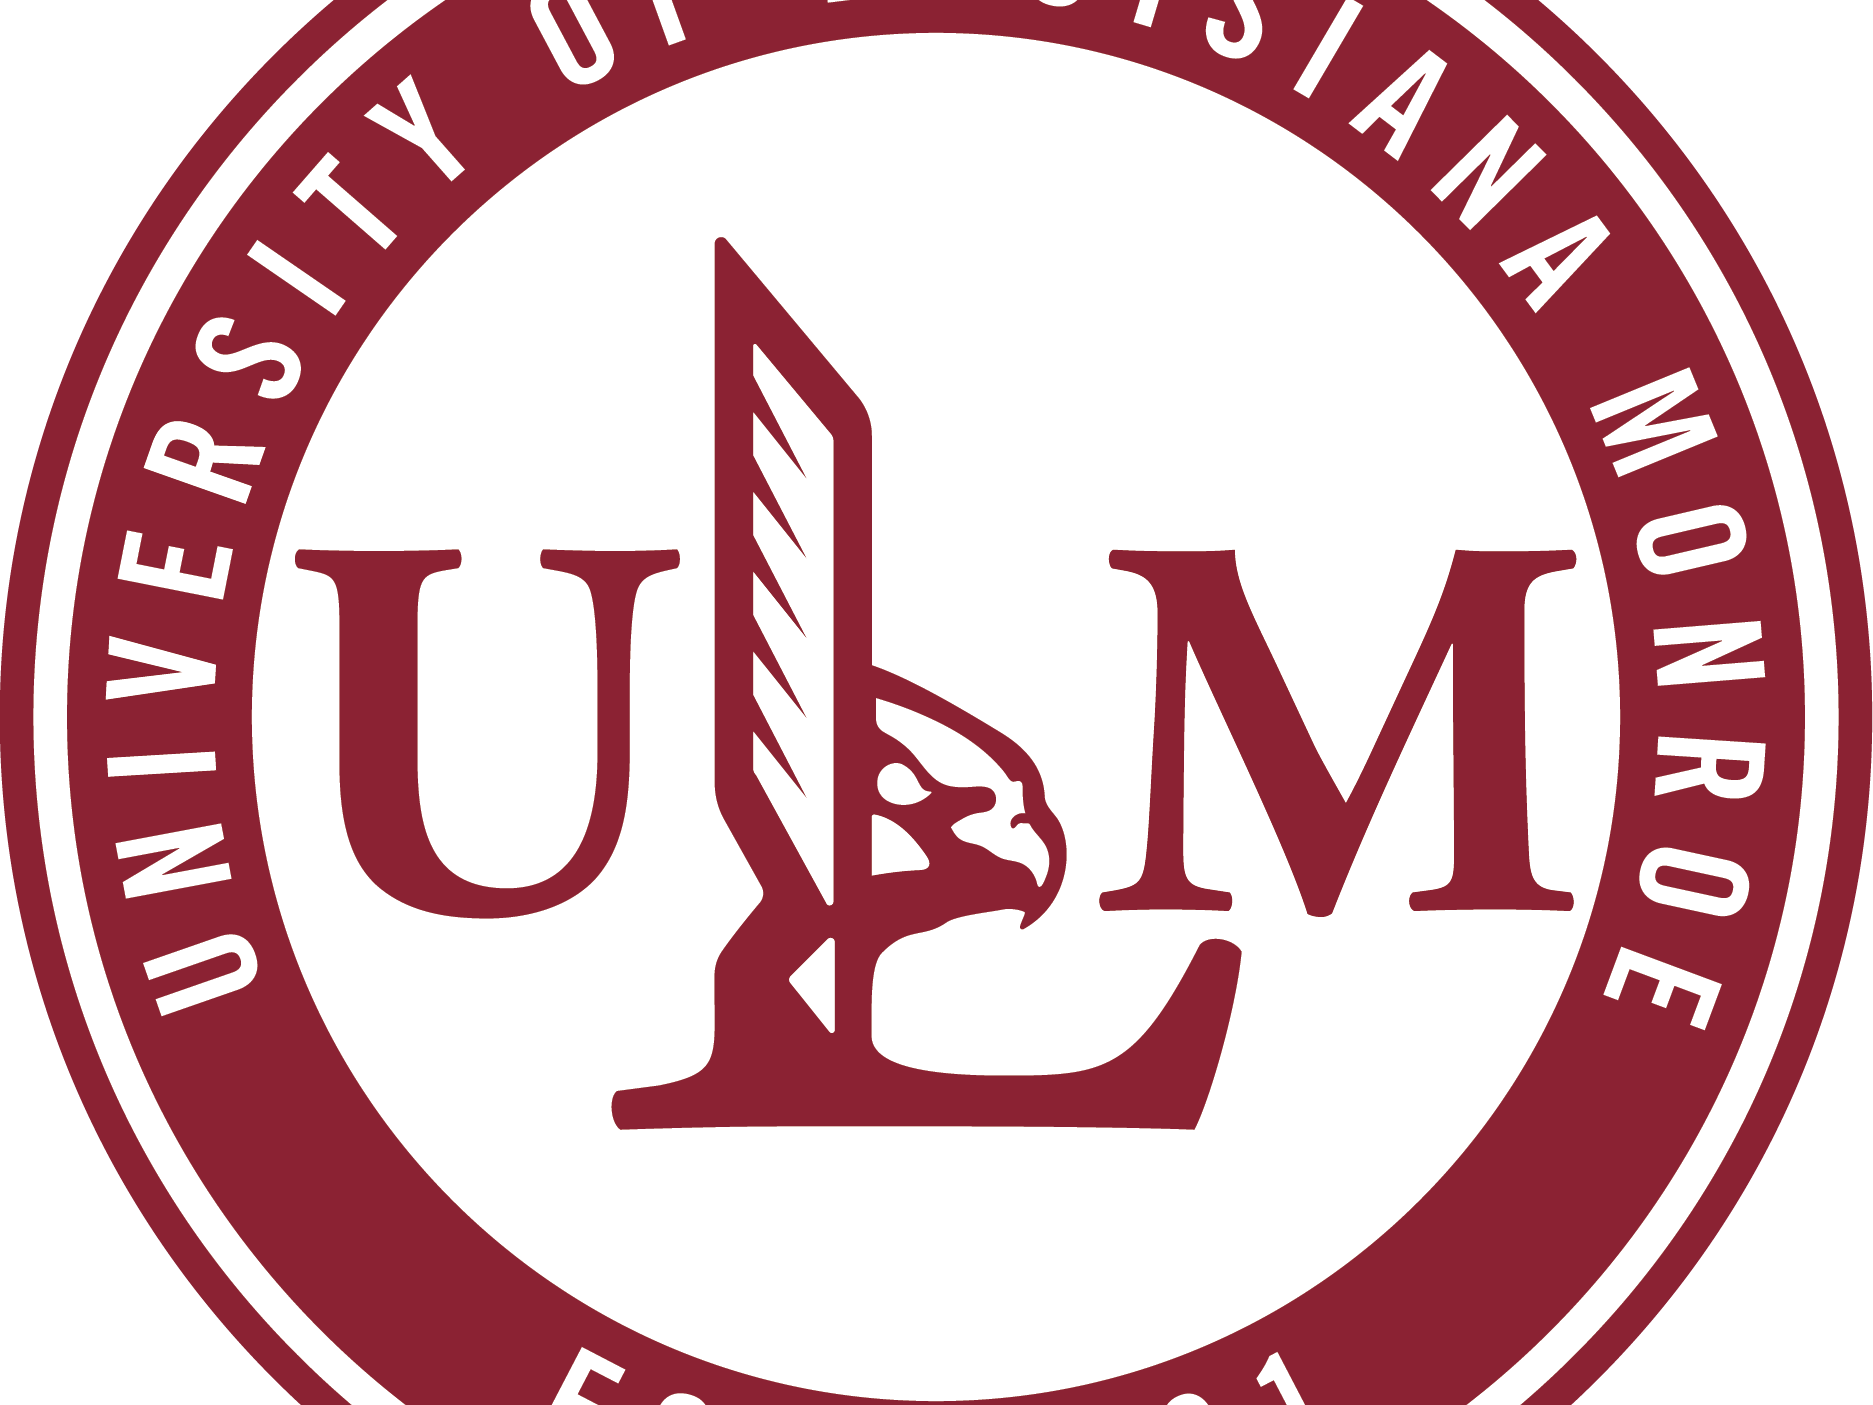 ULM to expand Health Sciences, CAES with new programs